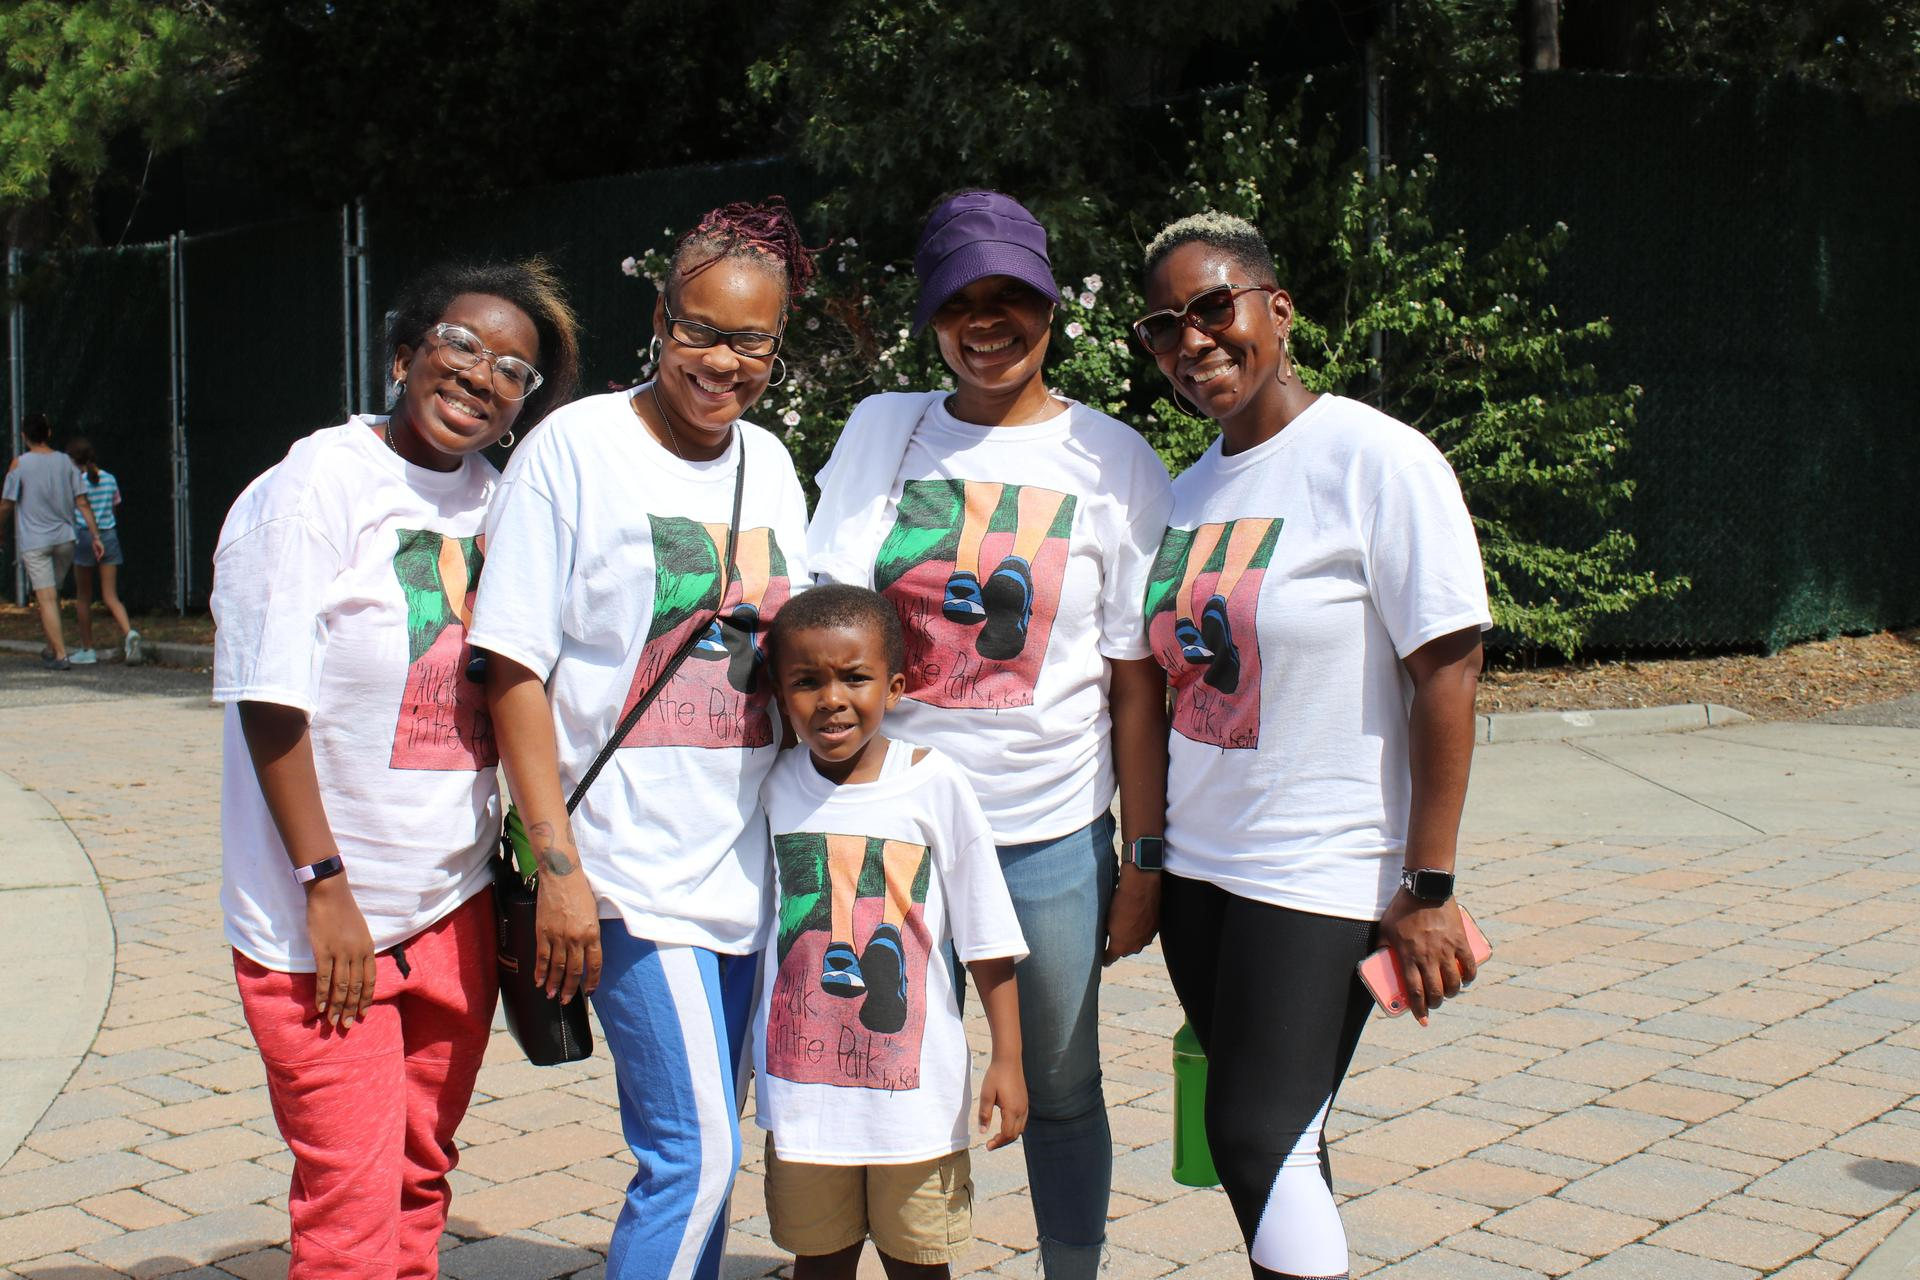 Family pic at DDI Walk 2019